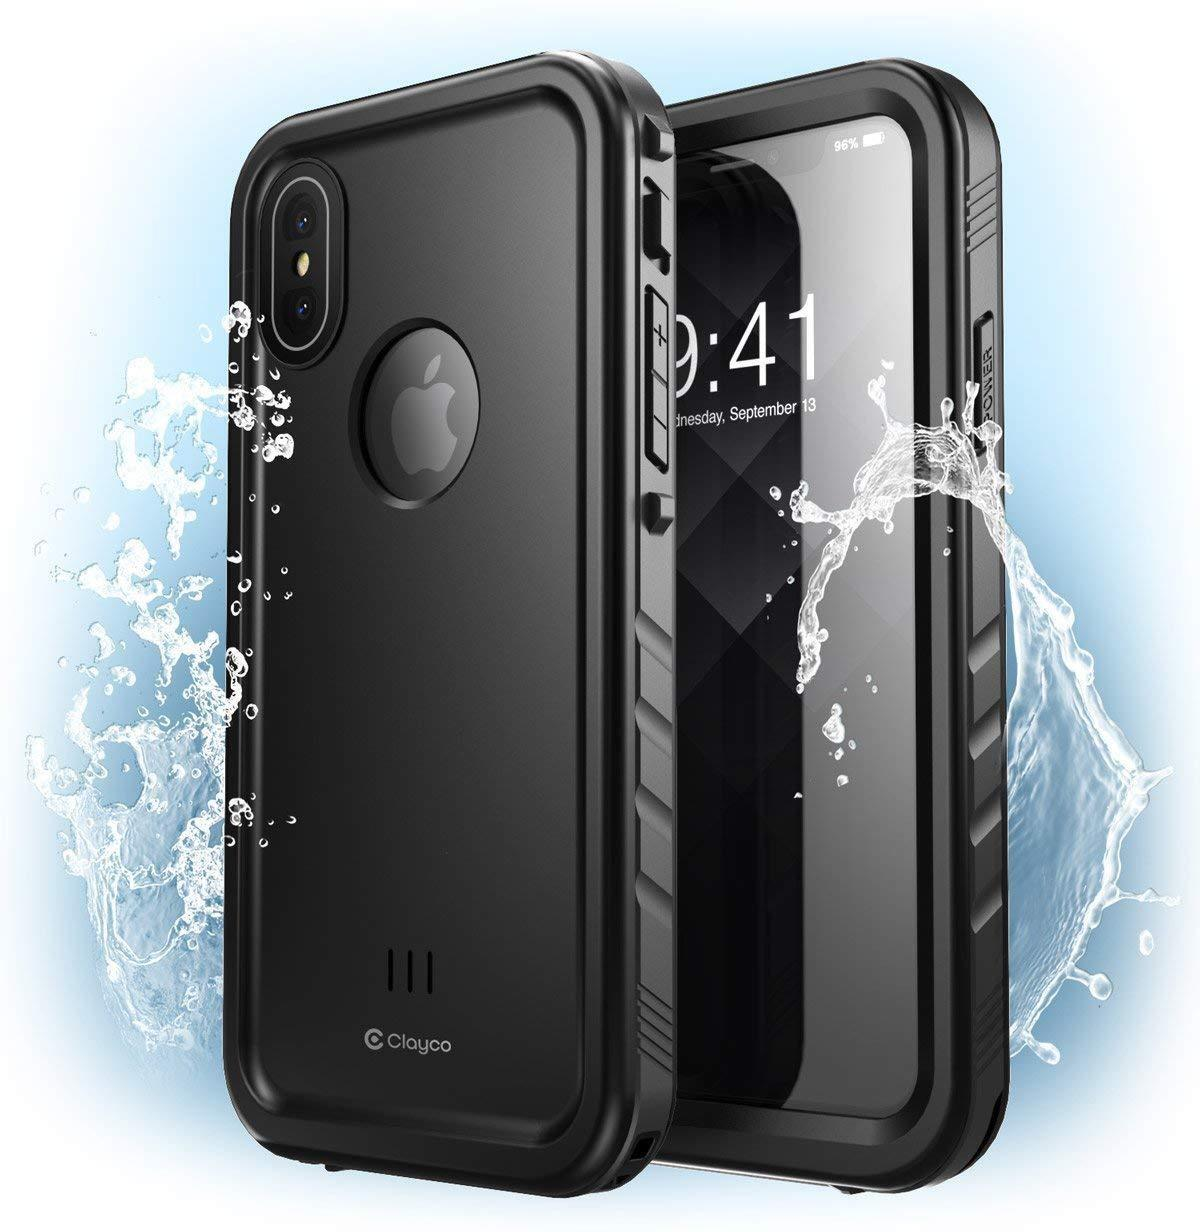 cheaper 43746 27a91 Details about New! iPhone XS Max Waterproof Case, Clayco Omni Series Cover  w/ Screen Protector